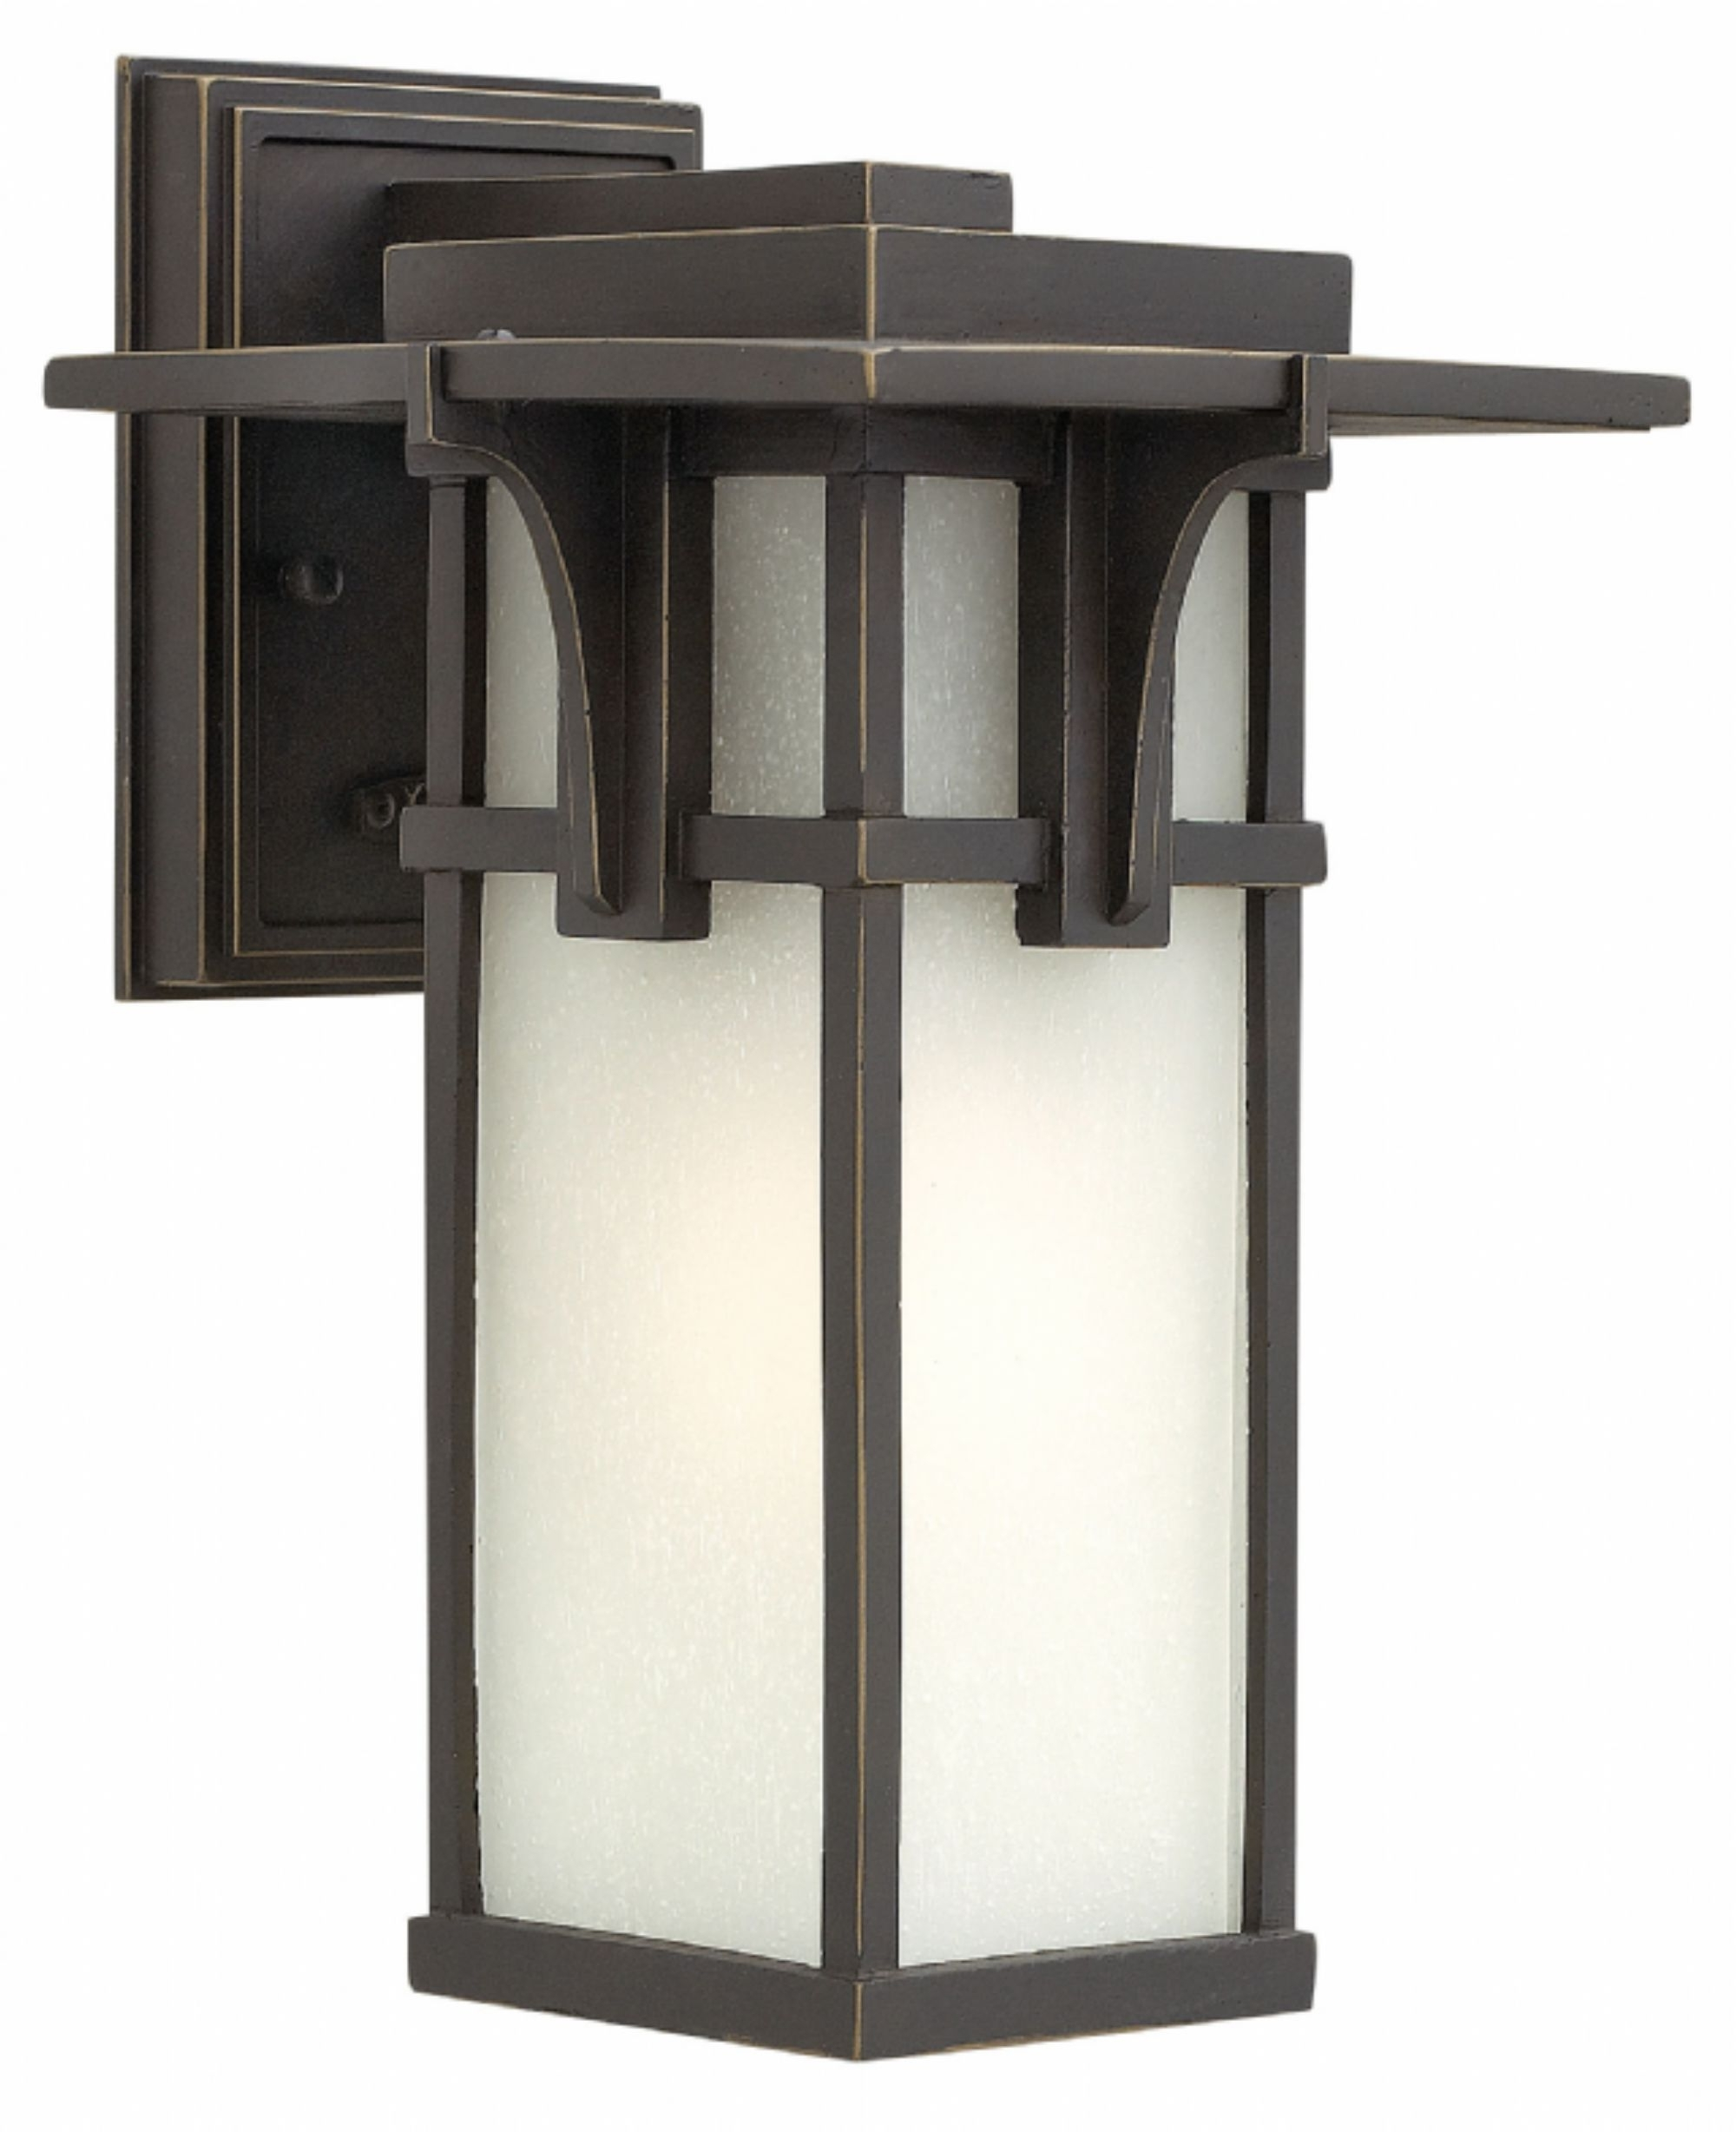 Oil Rubbed Bronze Manhattan > Exterior Wall Mount With Regard To Current Large Outdoor Wall Lanterns (View 18 of 20)